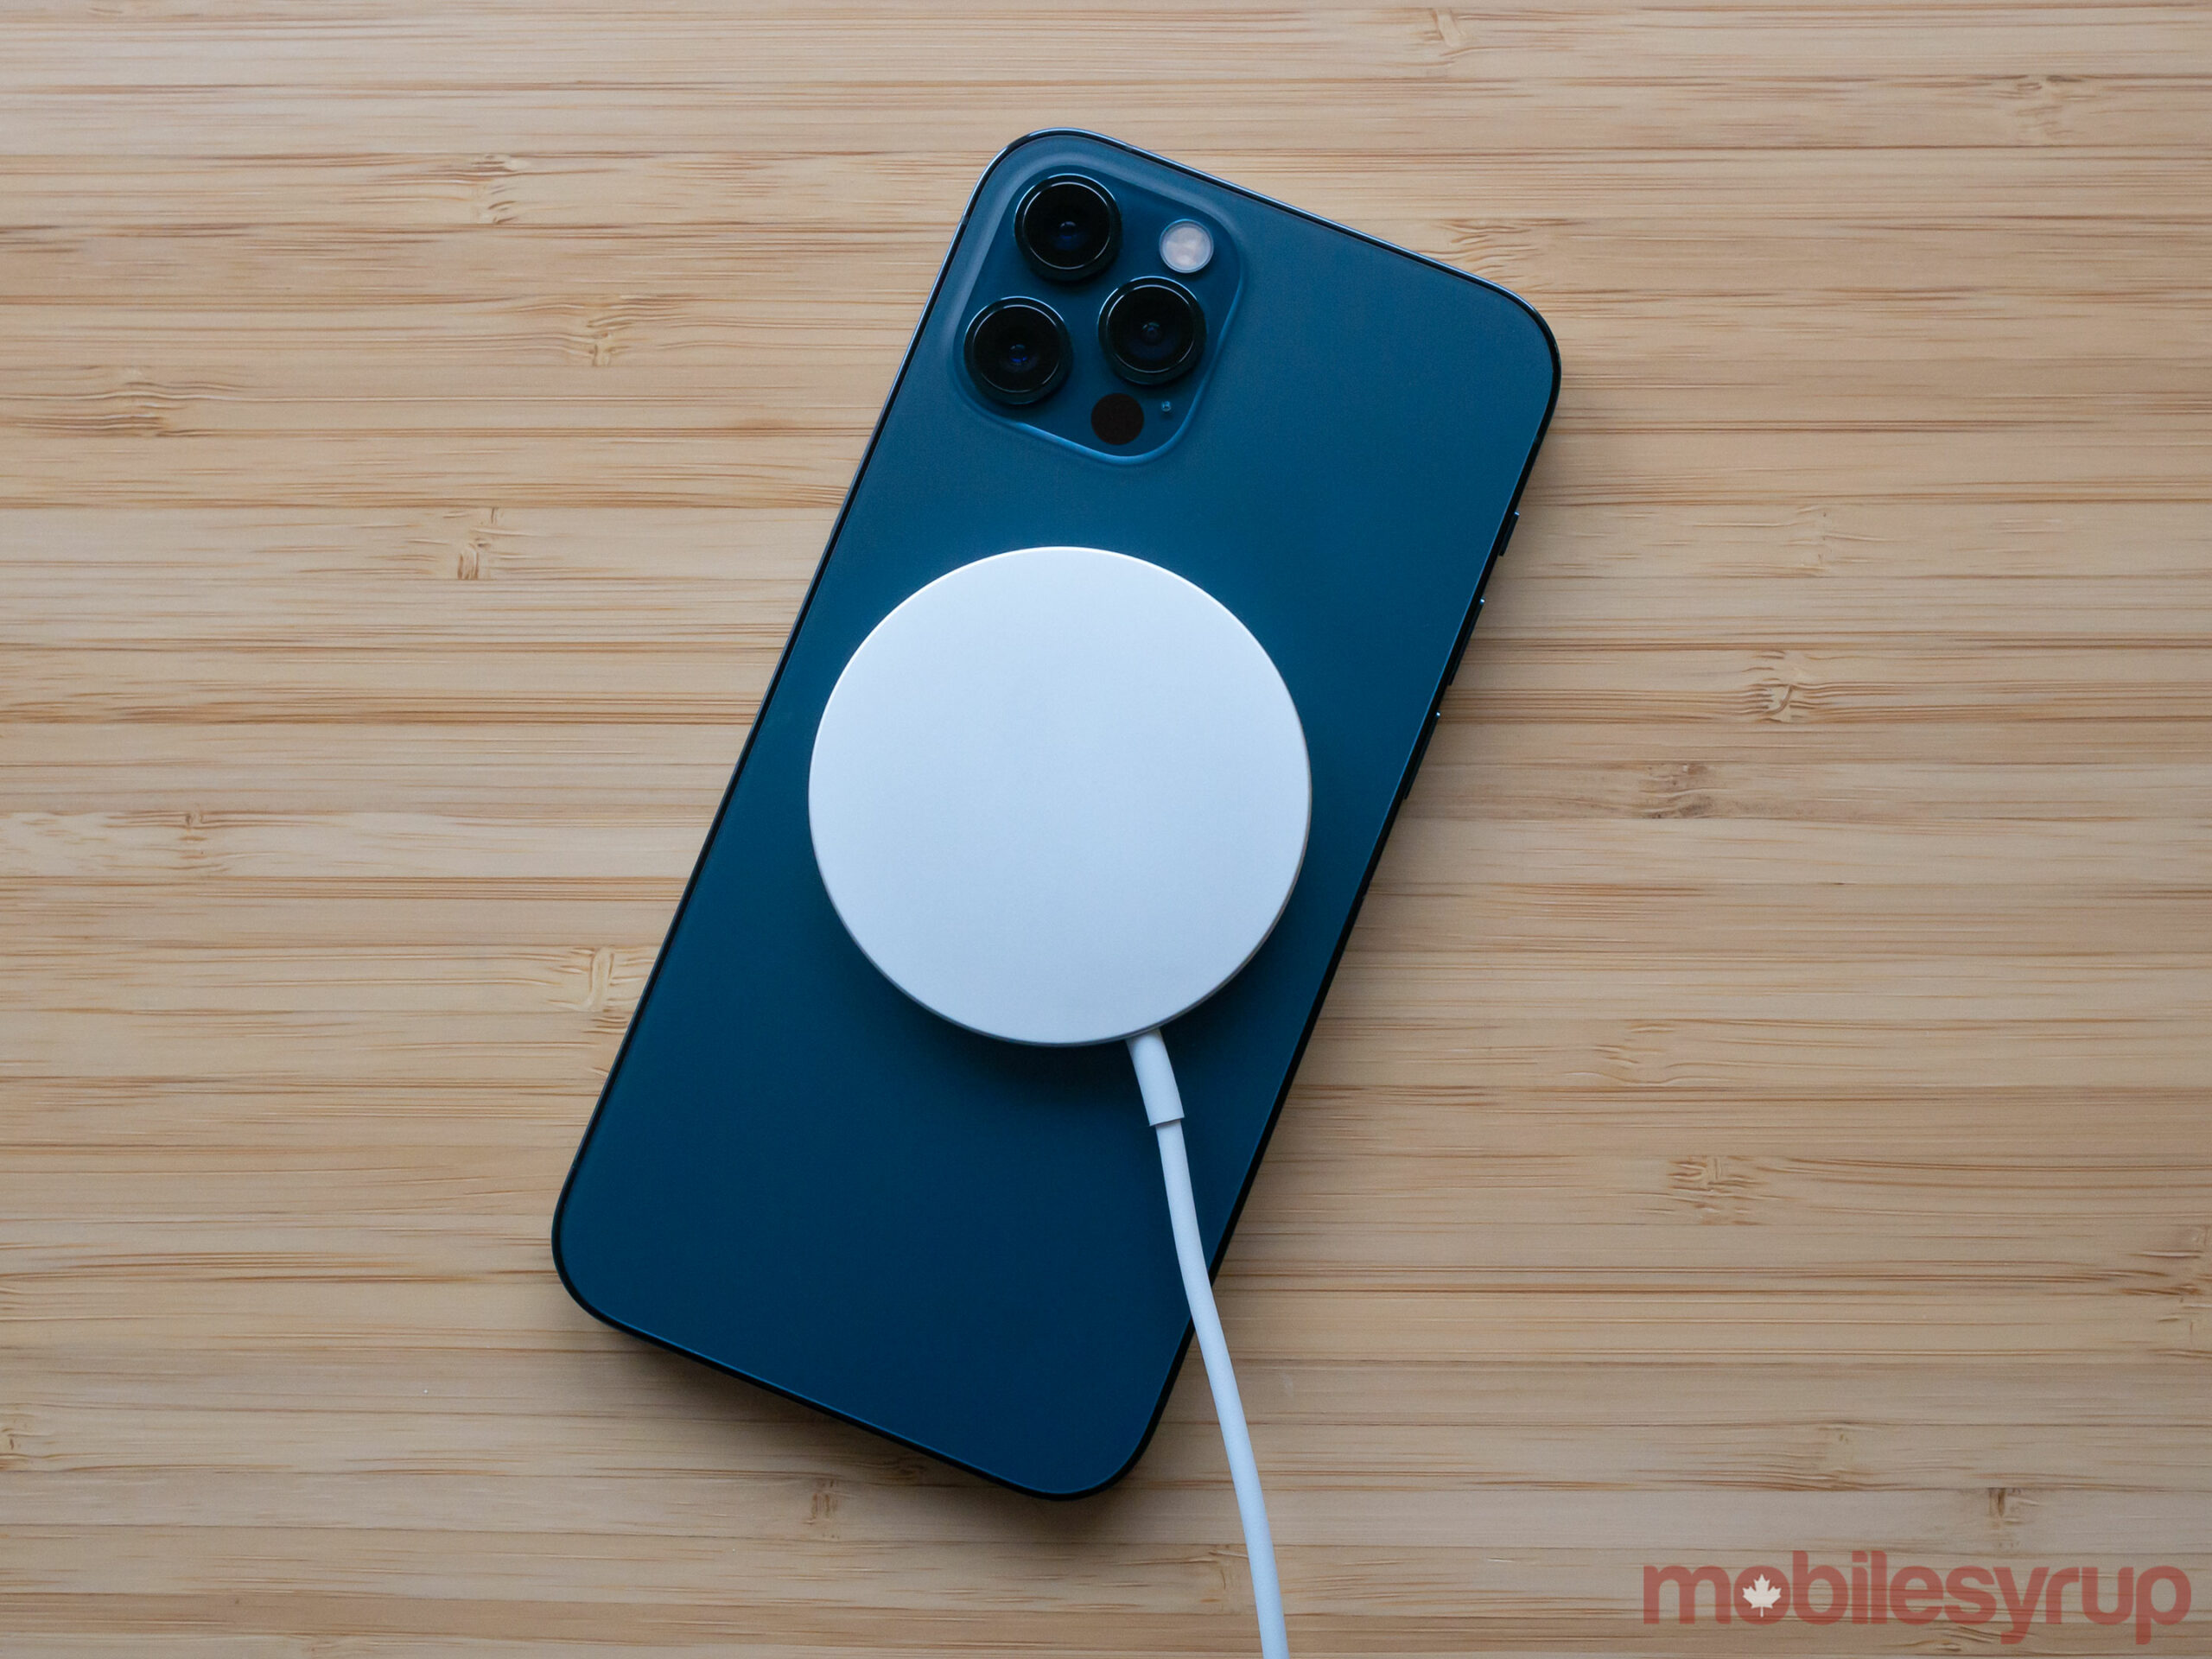 iPhone 12 Pro with MagSafe charger